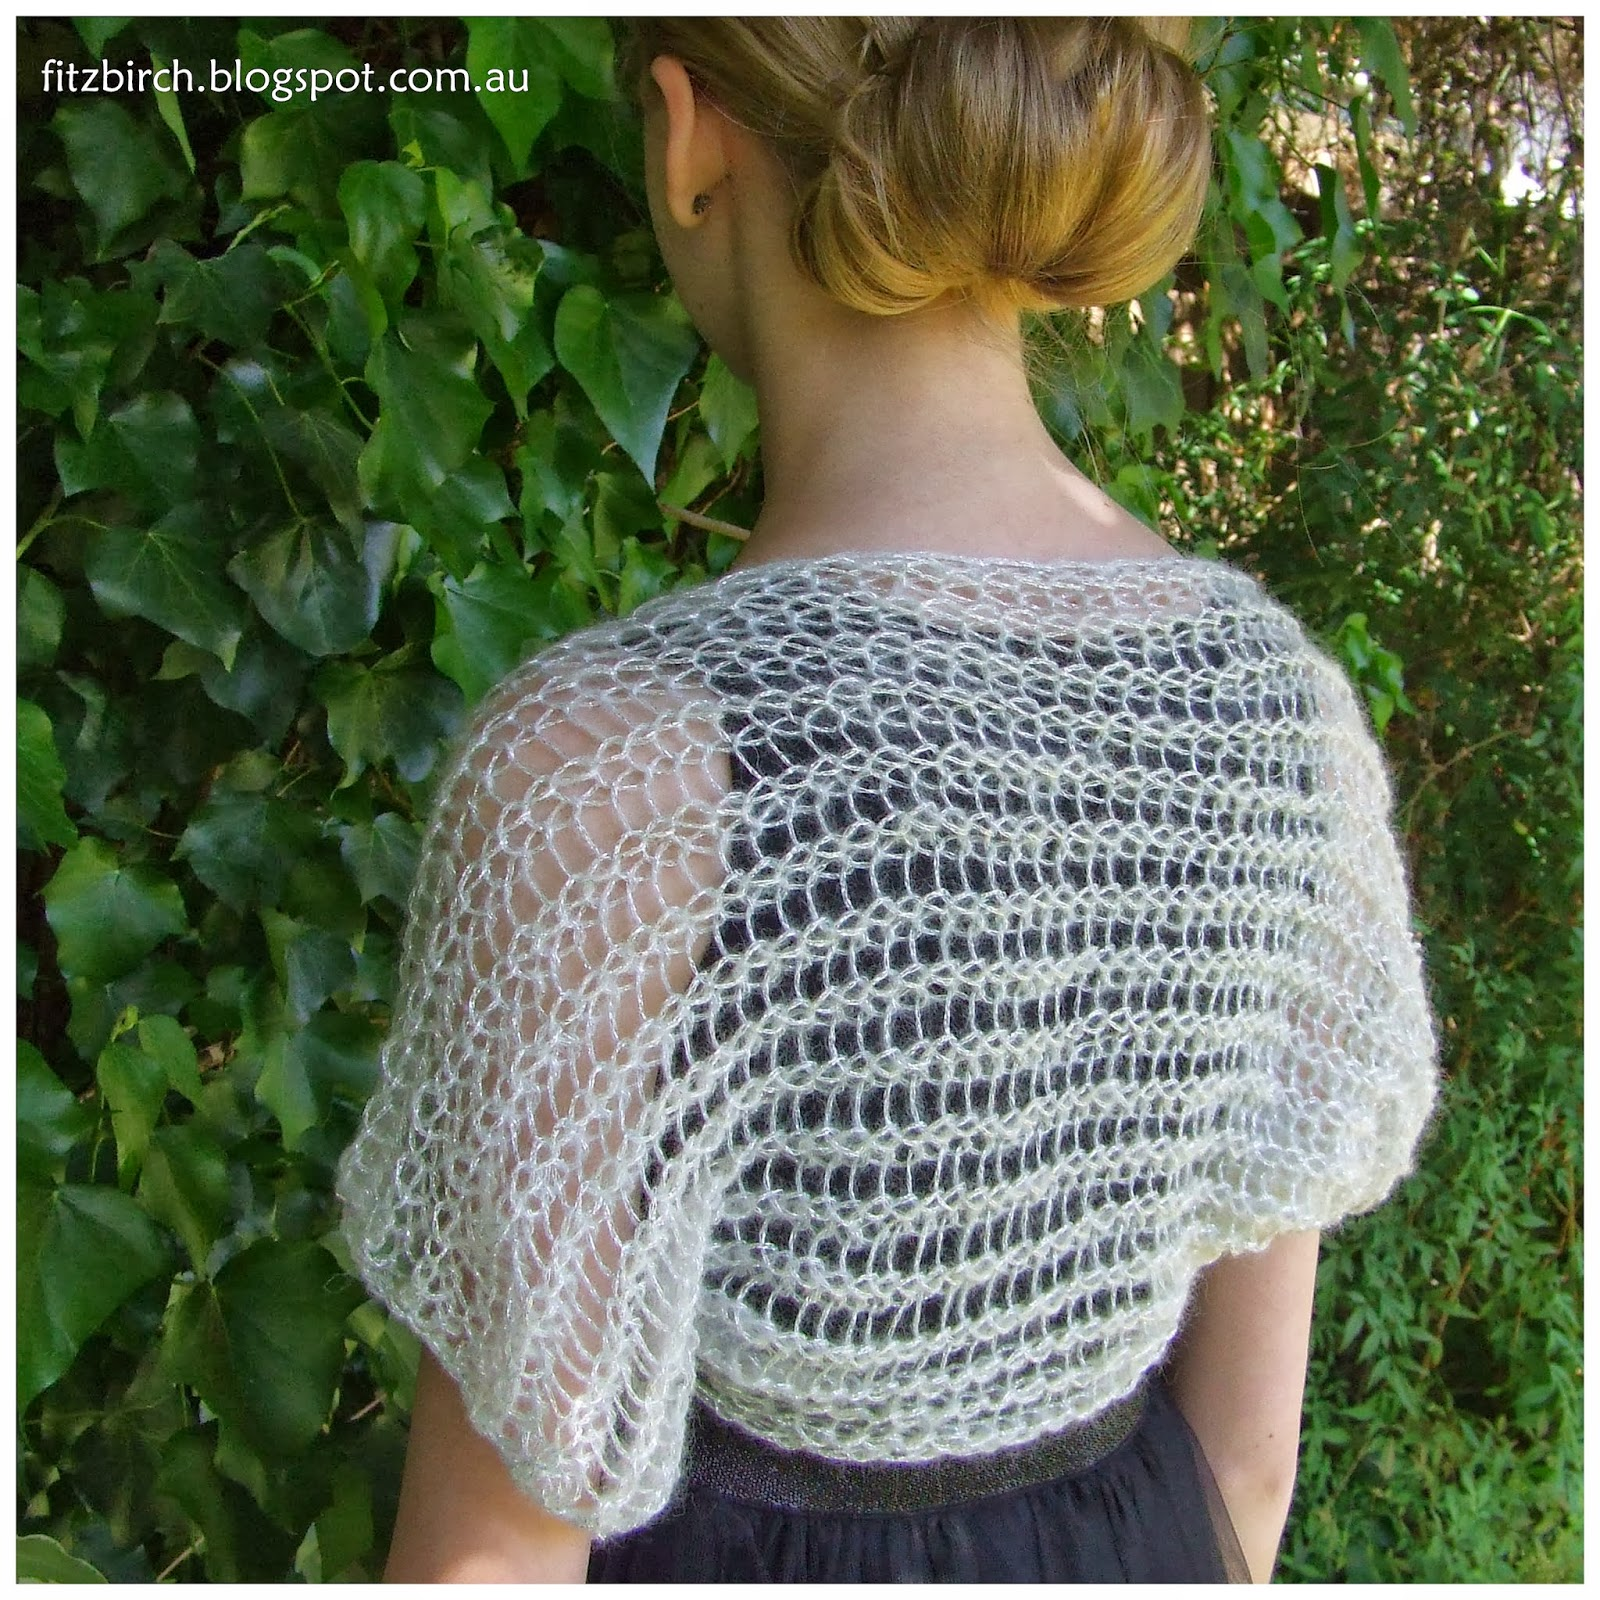 Patterns For Knitting Looms : FitzBirch Crafts: Loom Knit Shimmery Shrug